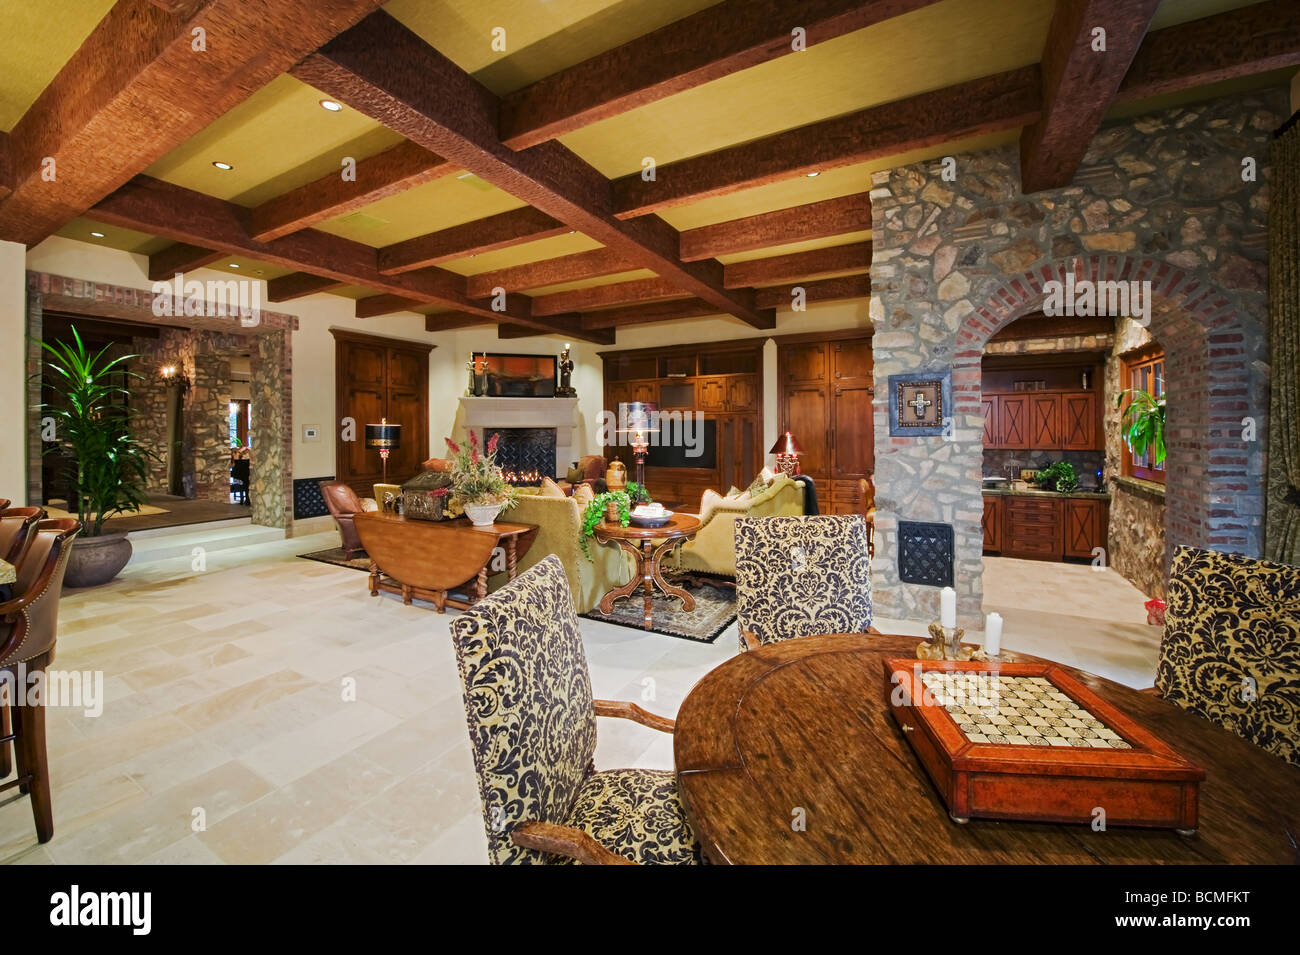 Mediterranean Decor Family Room With Beamed Ceiling And Beautiful Built In  Cabinets And Rich Furnishings